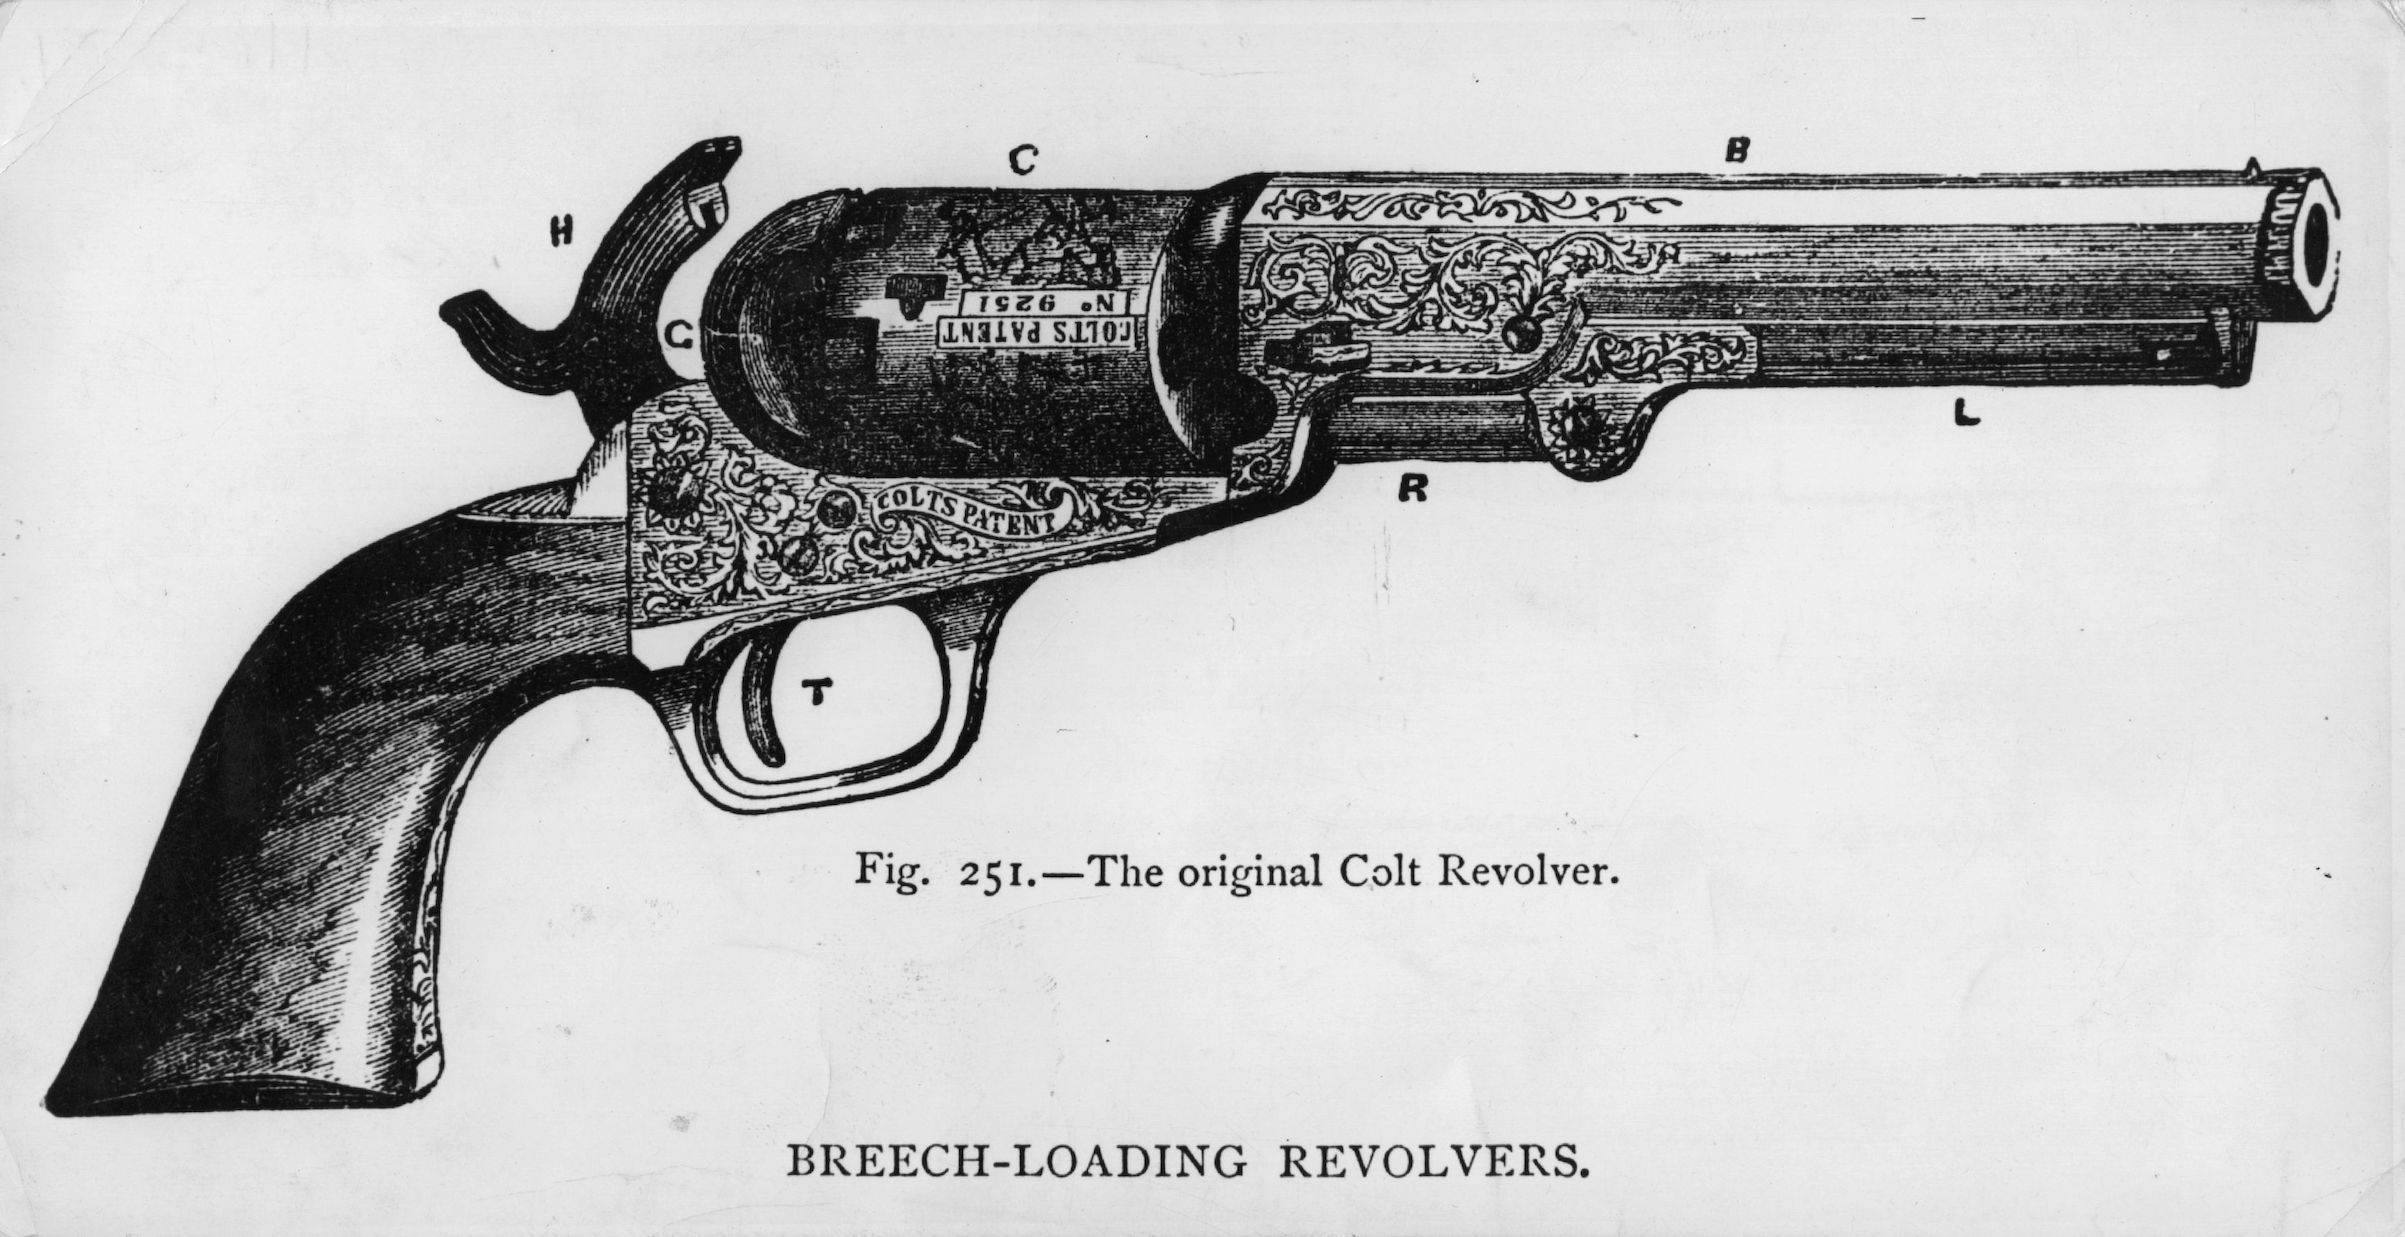 circa 1835:  The original Colt revolver, as patented by Colonel Samuel Colt.